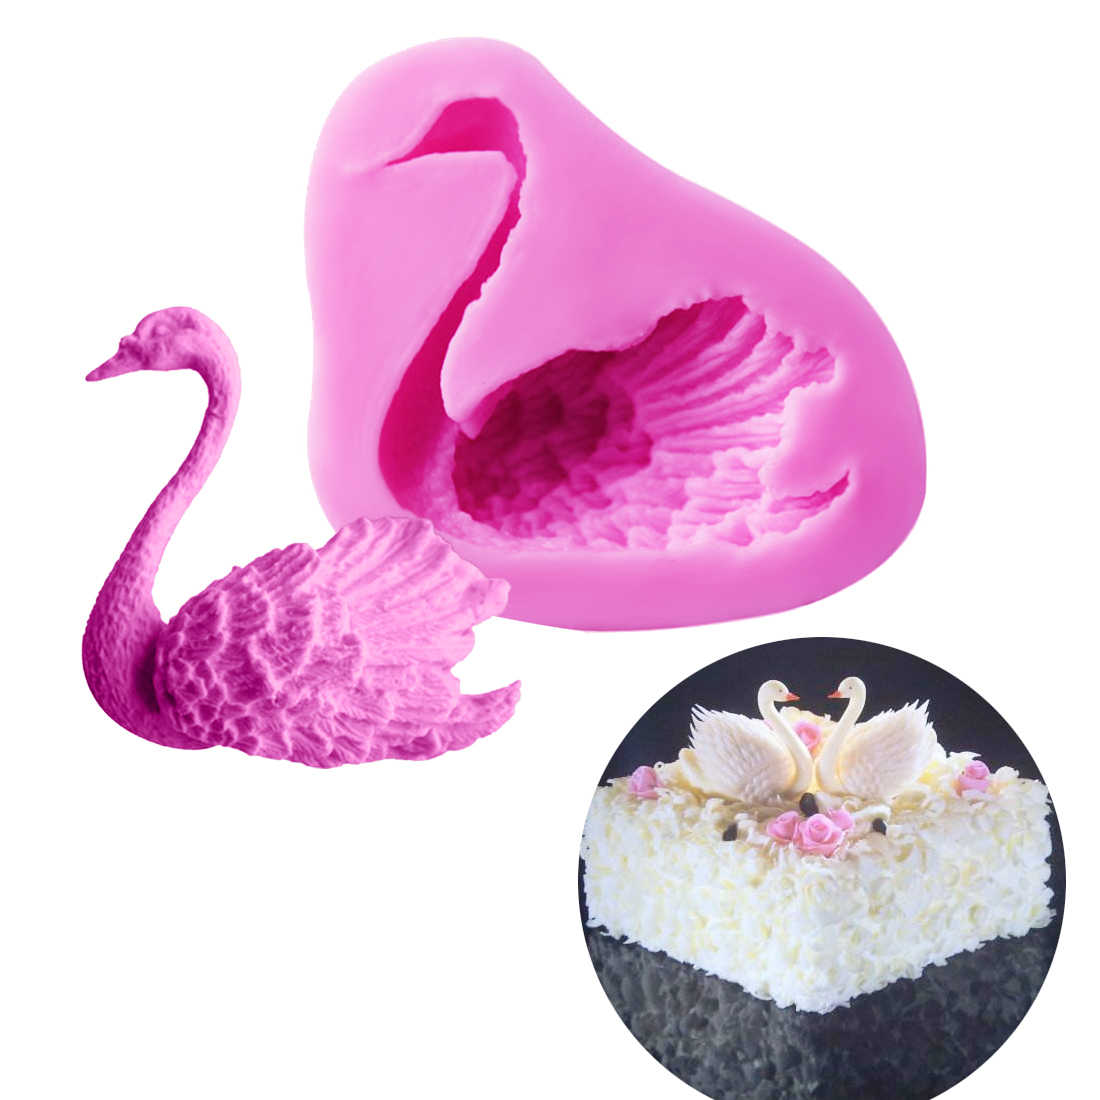 Pastry Tools 1PC Silicone Mold Swan Shape Fondant Chocolate Soap Mold Cake Stencils Bread Moulds Kitchen Accessories Baking Pan